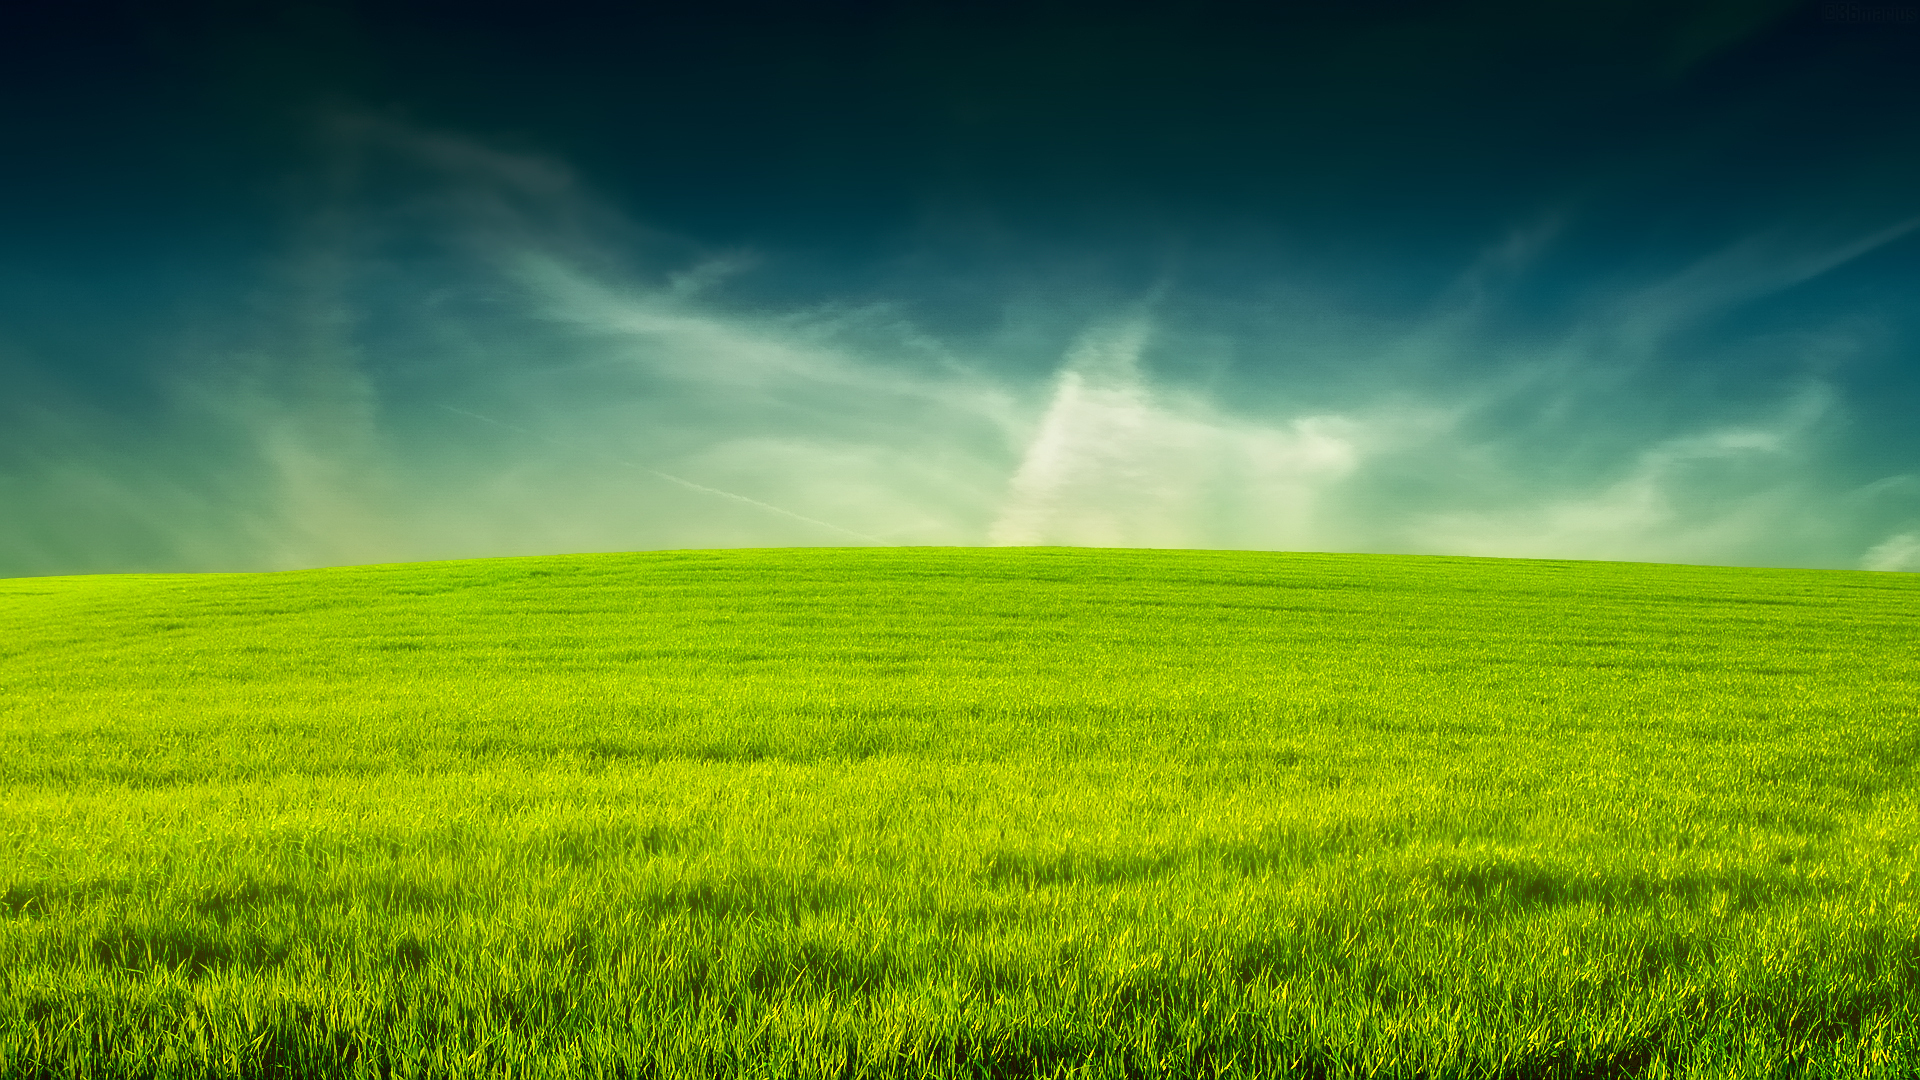 Amusing Grass Wallpaper Sky Space Images 1920x1080px